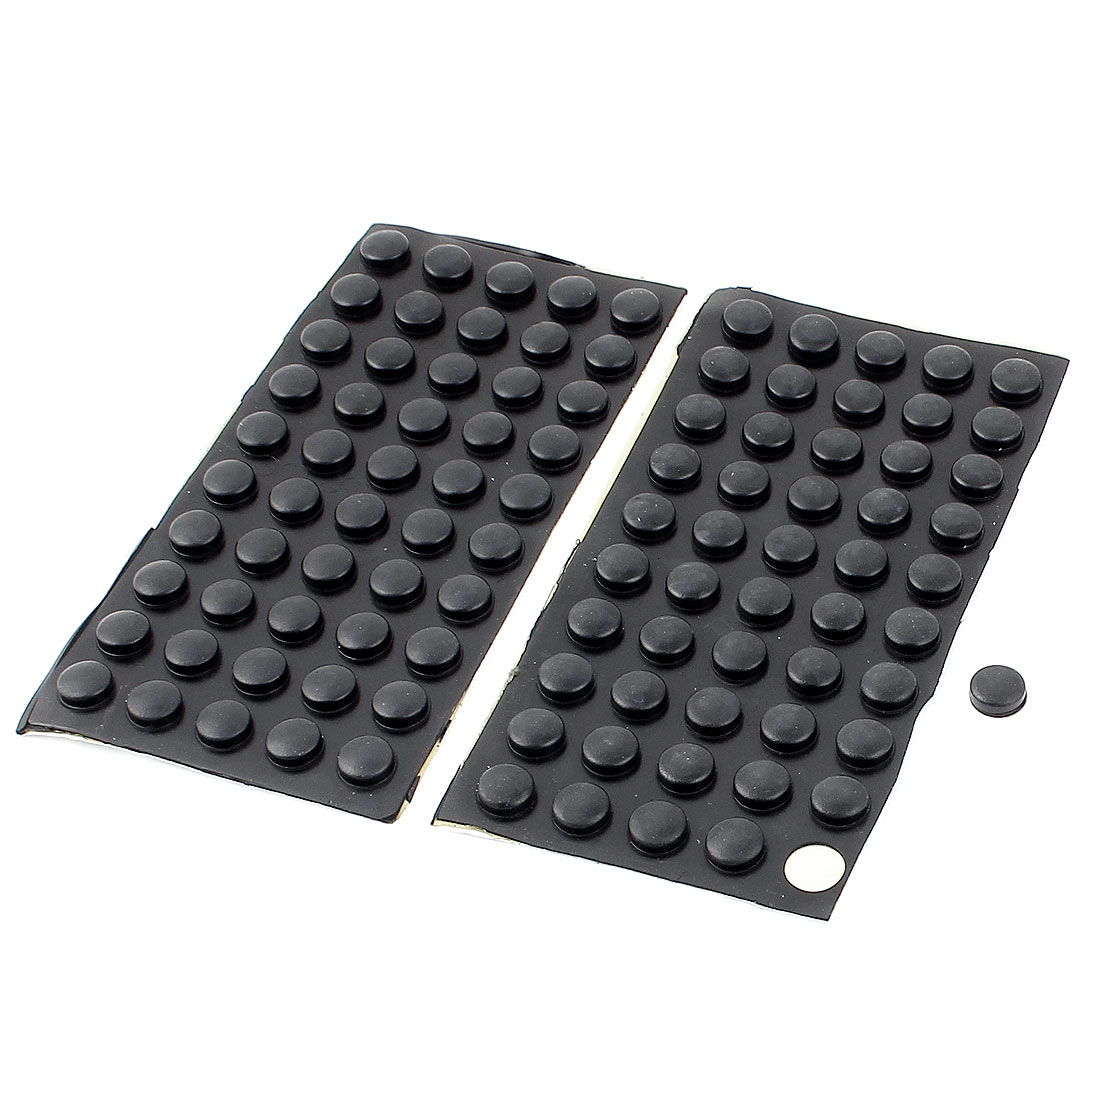 100 Pcs Round Shape Tables Chairs Anti-slip Pads Cushion Rubber Foot Mat